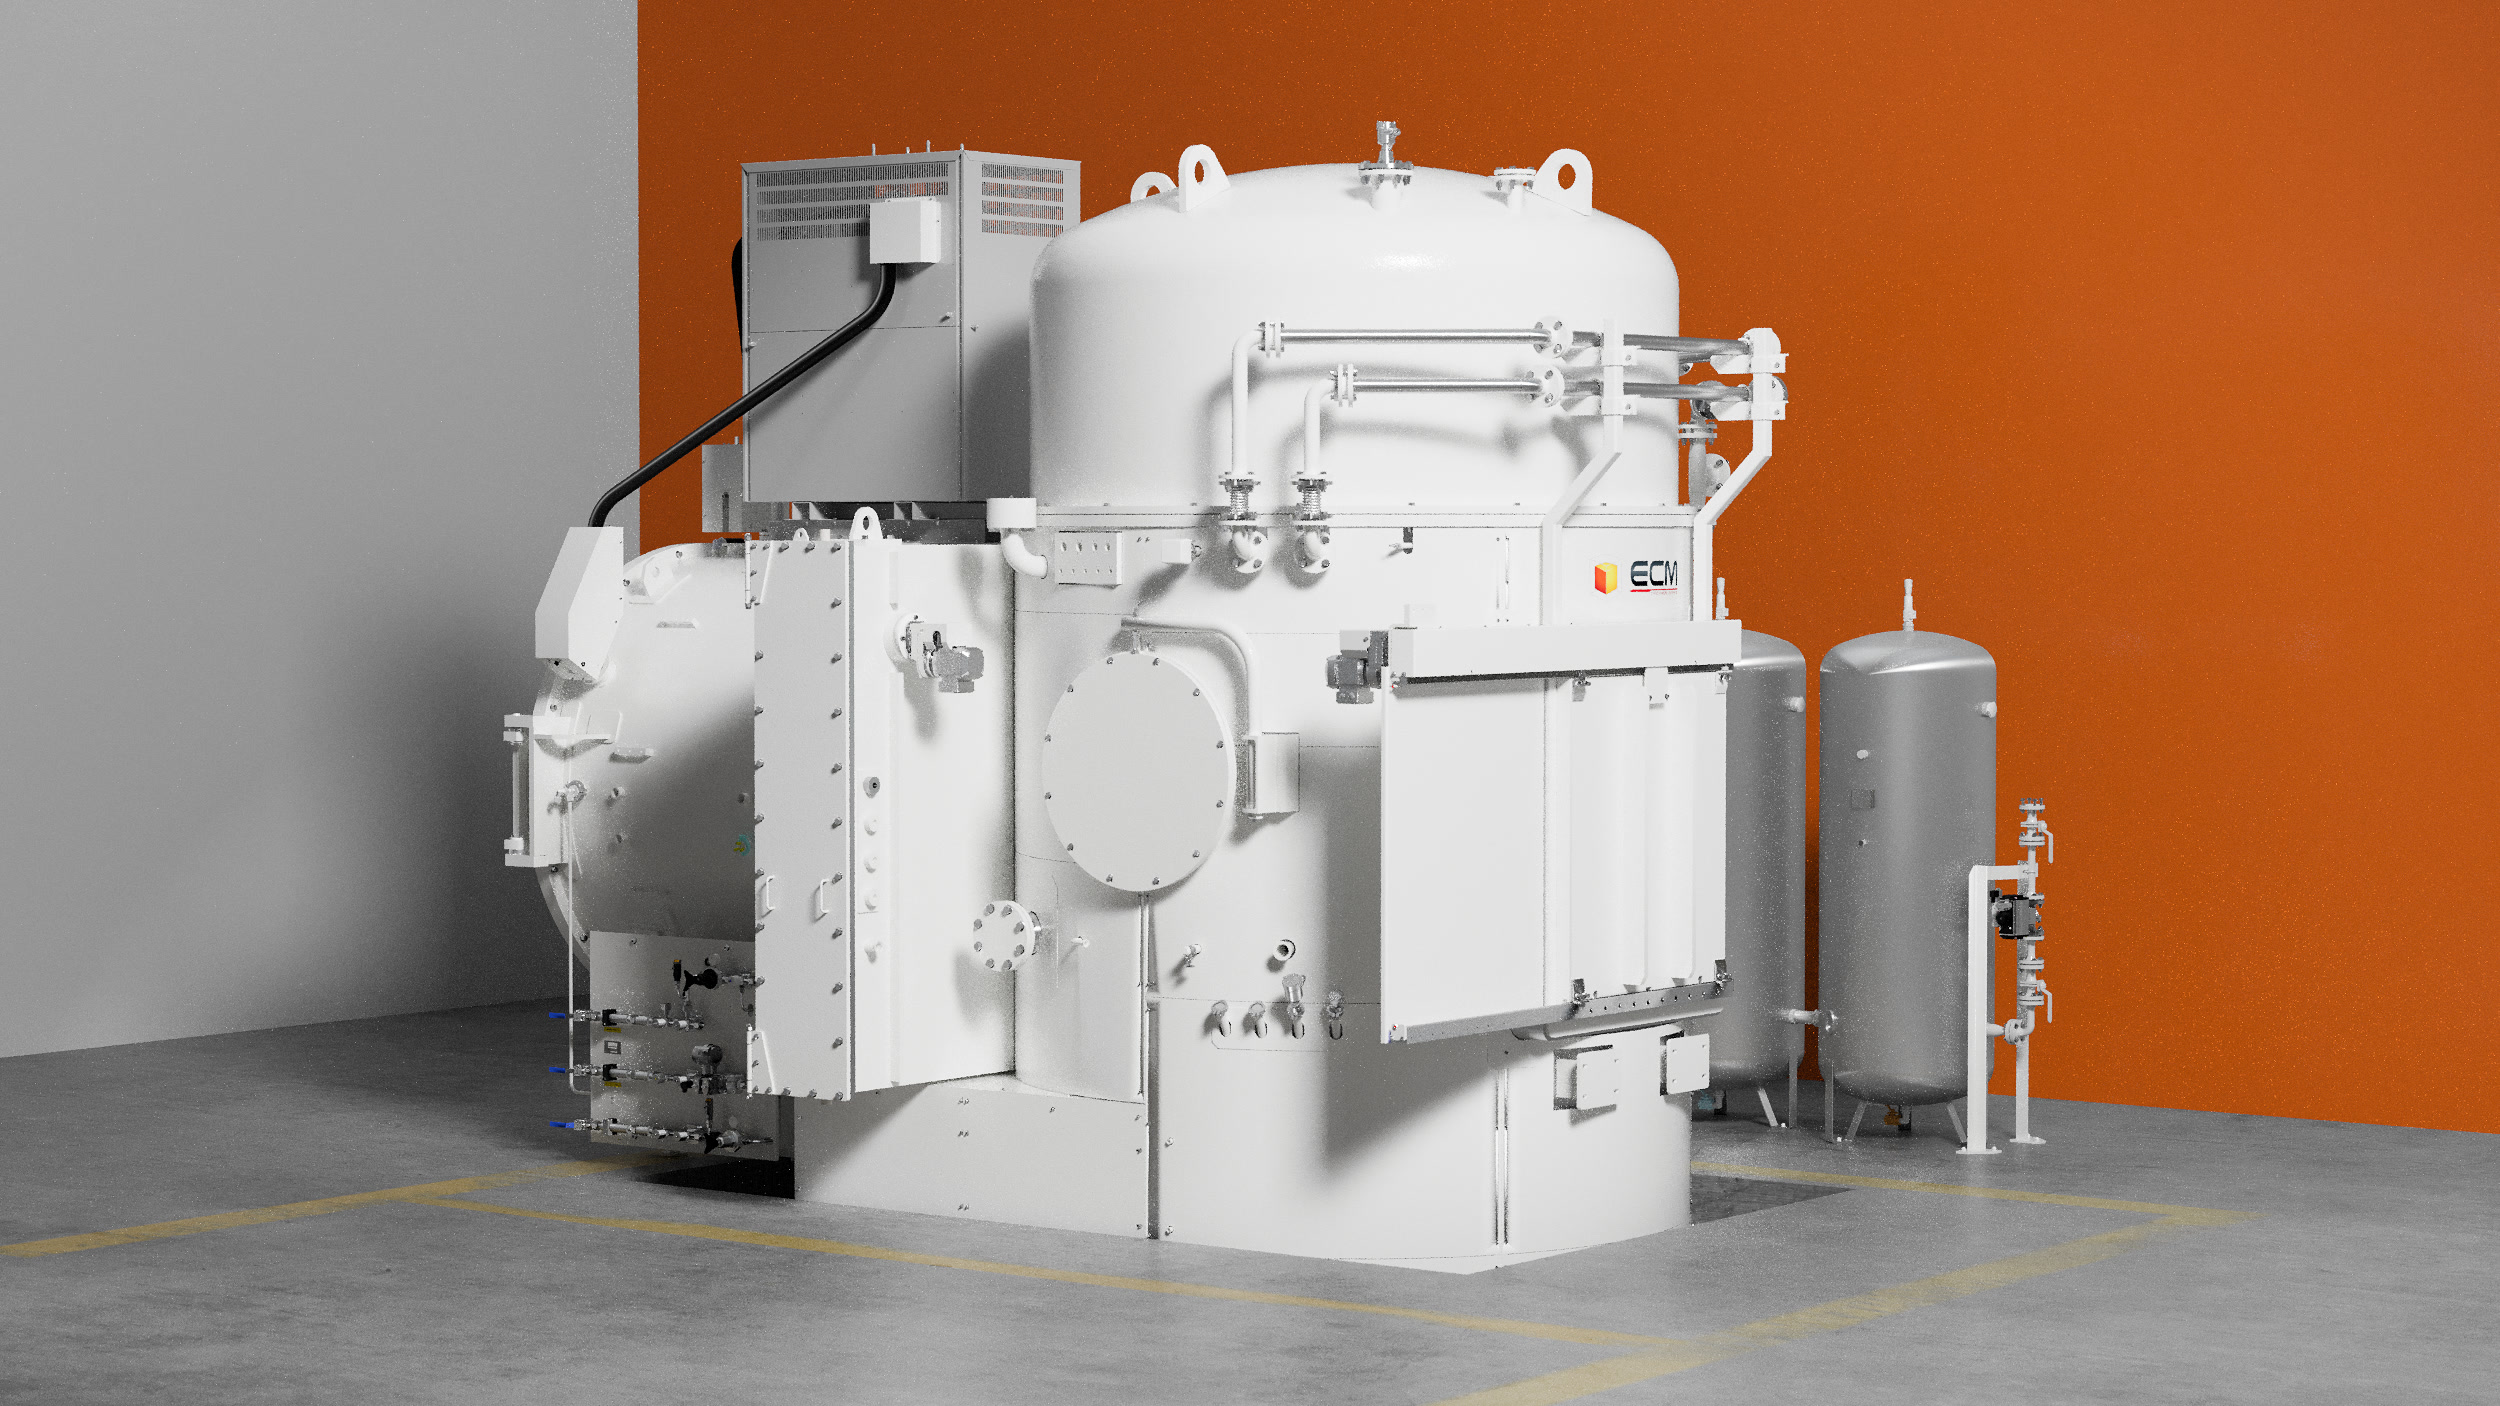 ecm-eco-vacuum-furnace